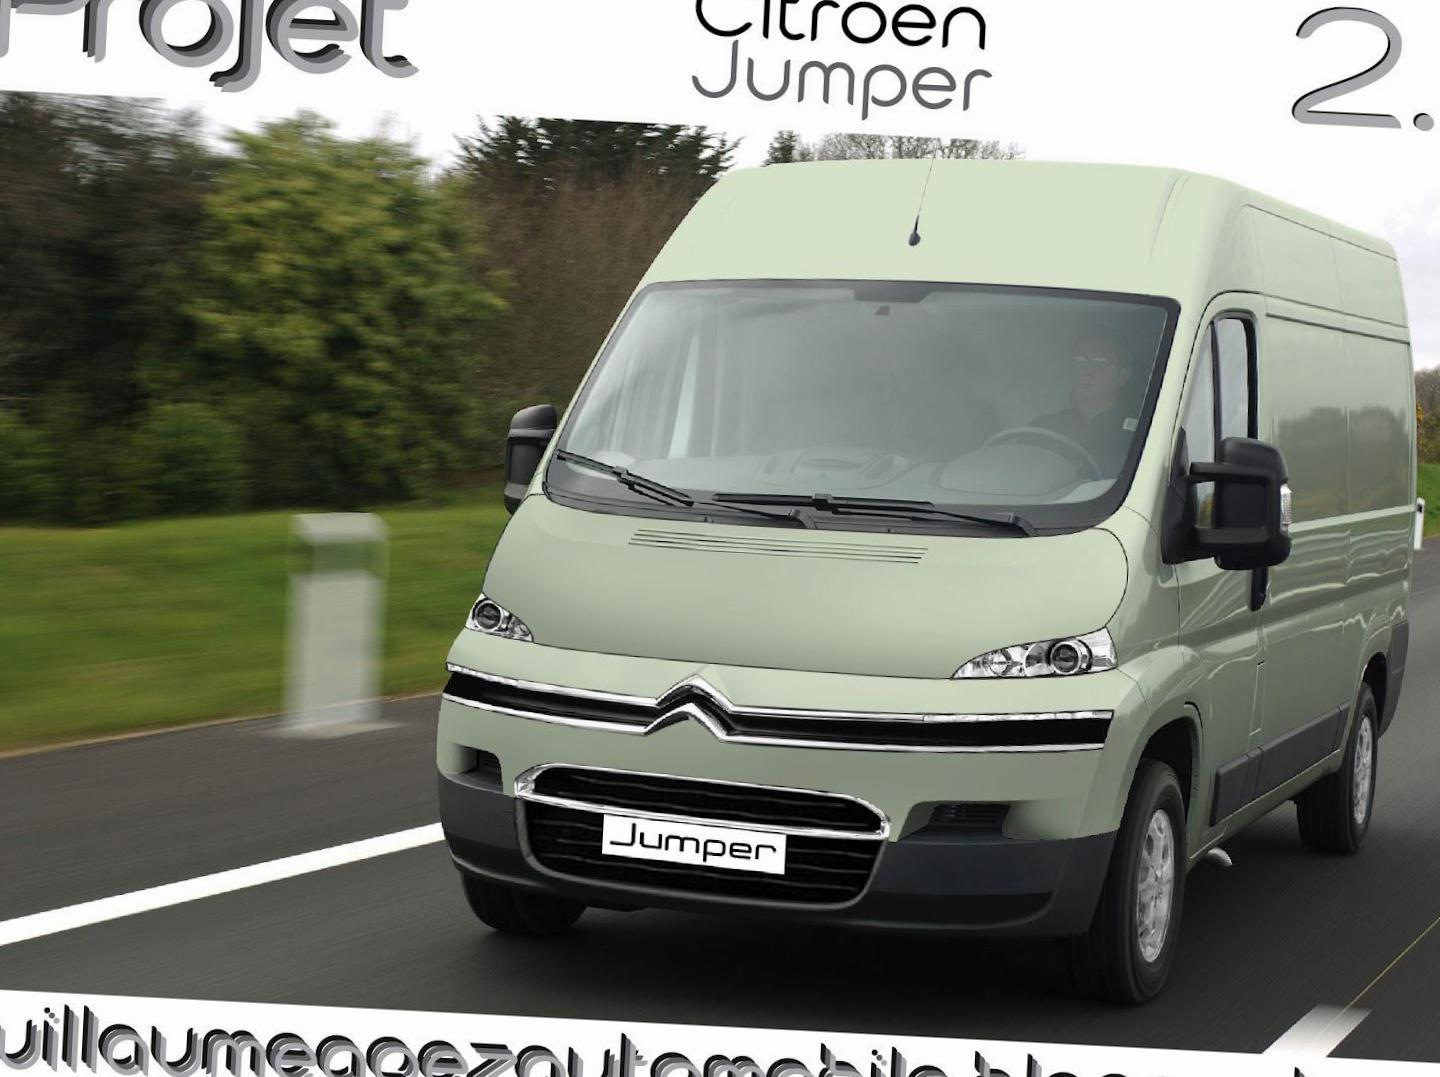 Citroen Jumper VU for sale 2008